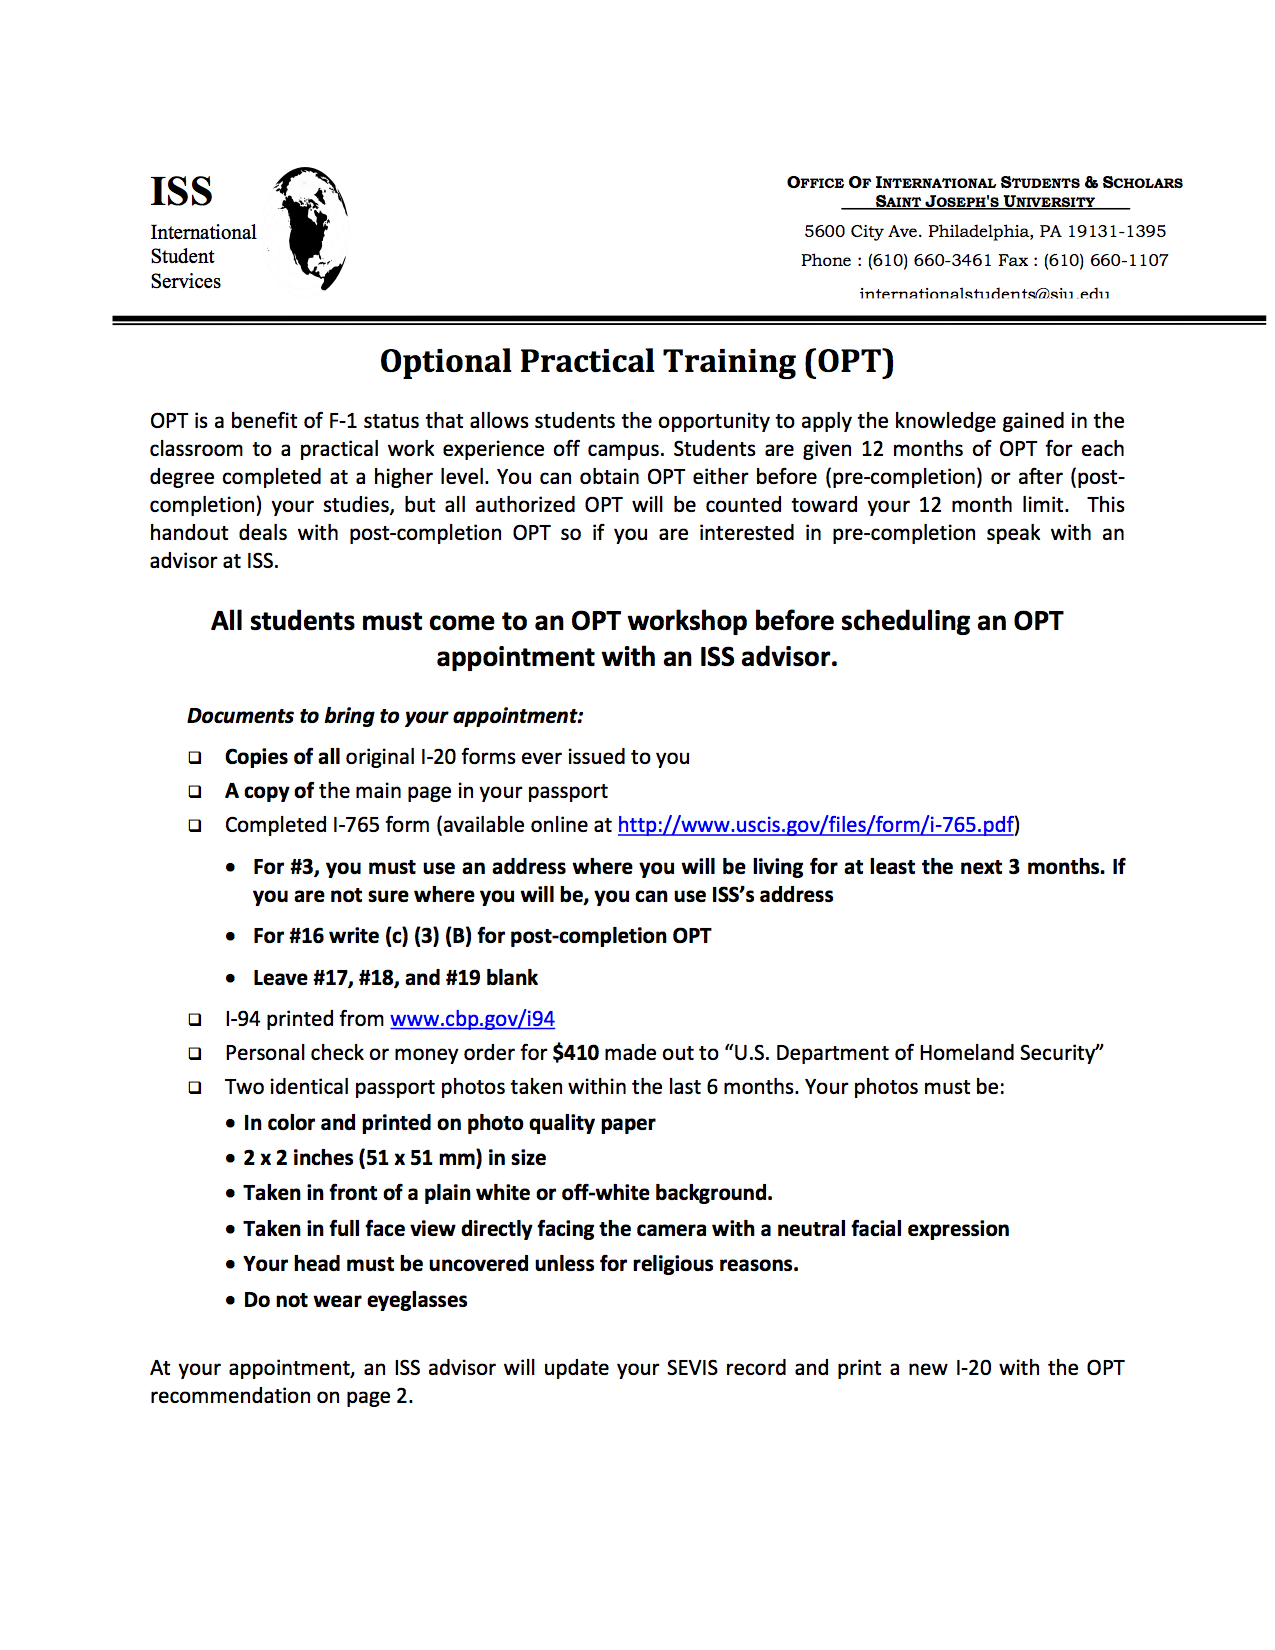 Optional Practical Training Opt Inclusion And Diversity At Sju